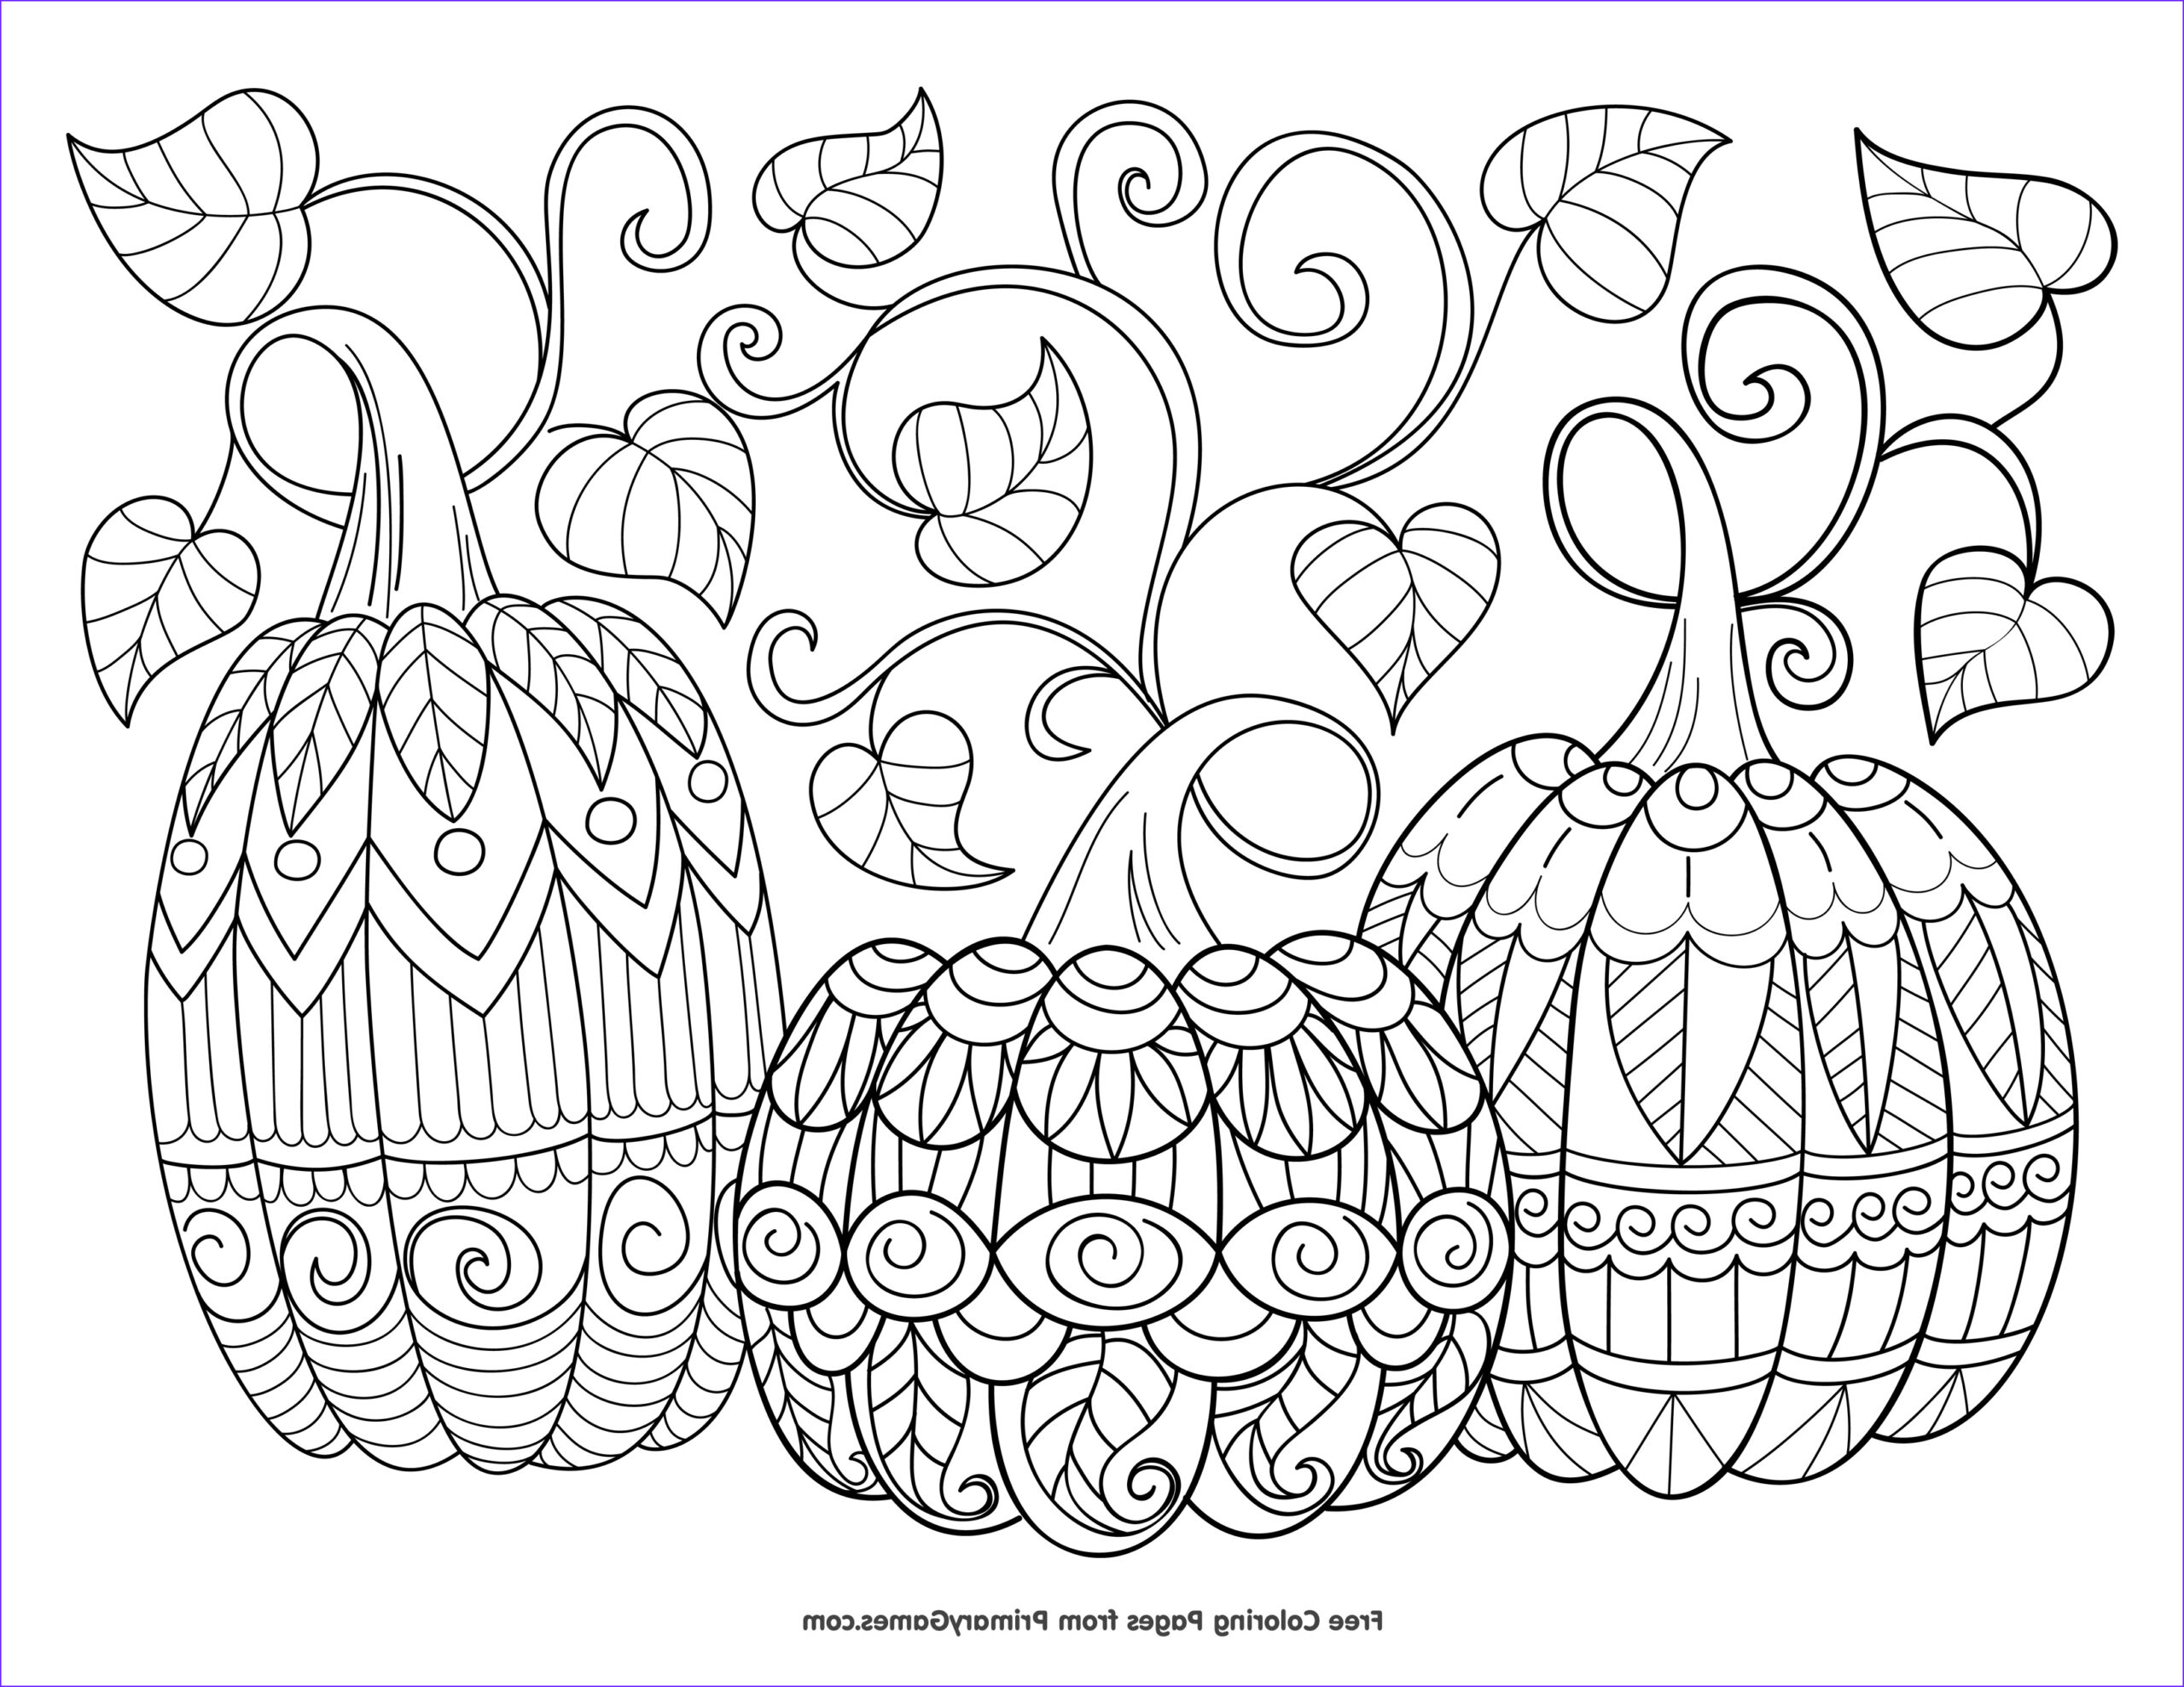 Halloween Coloring Luxury Image Free Halloween Coloring Pages for Adults & Kids